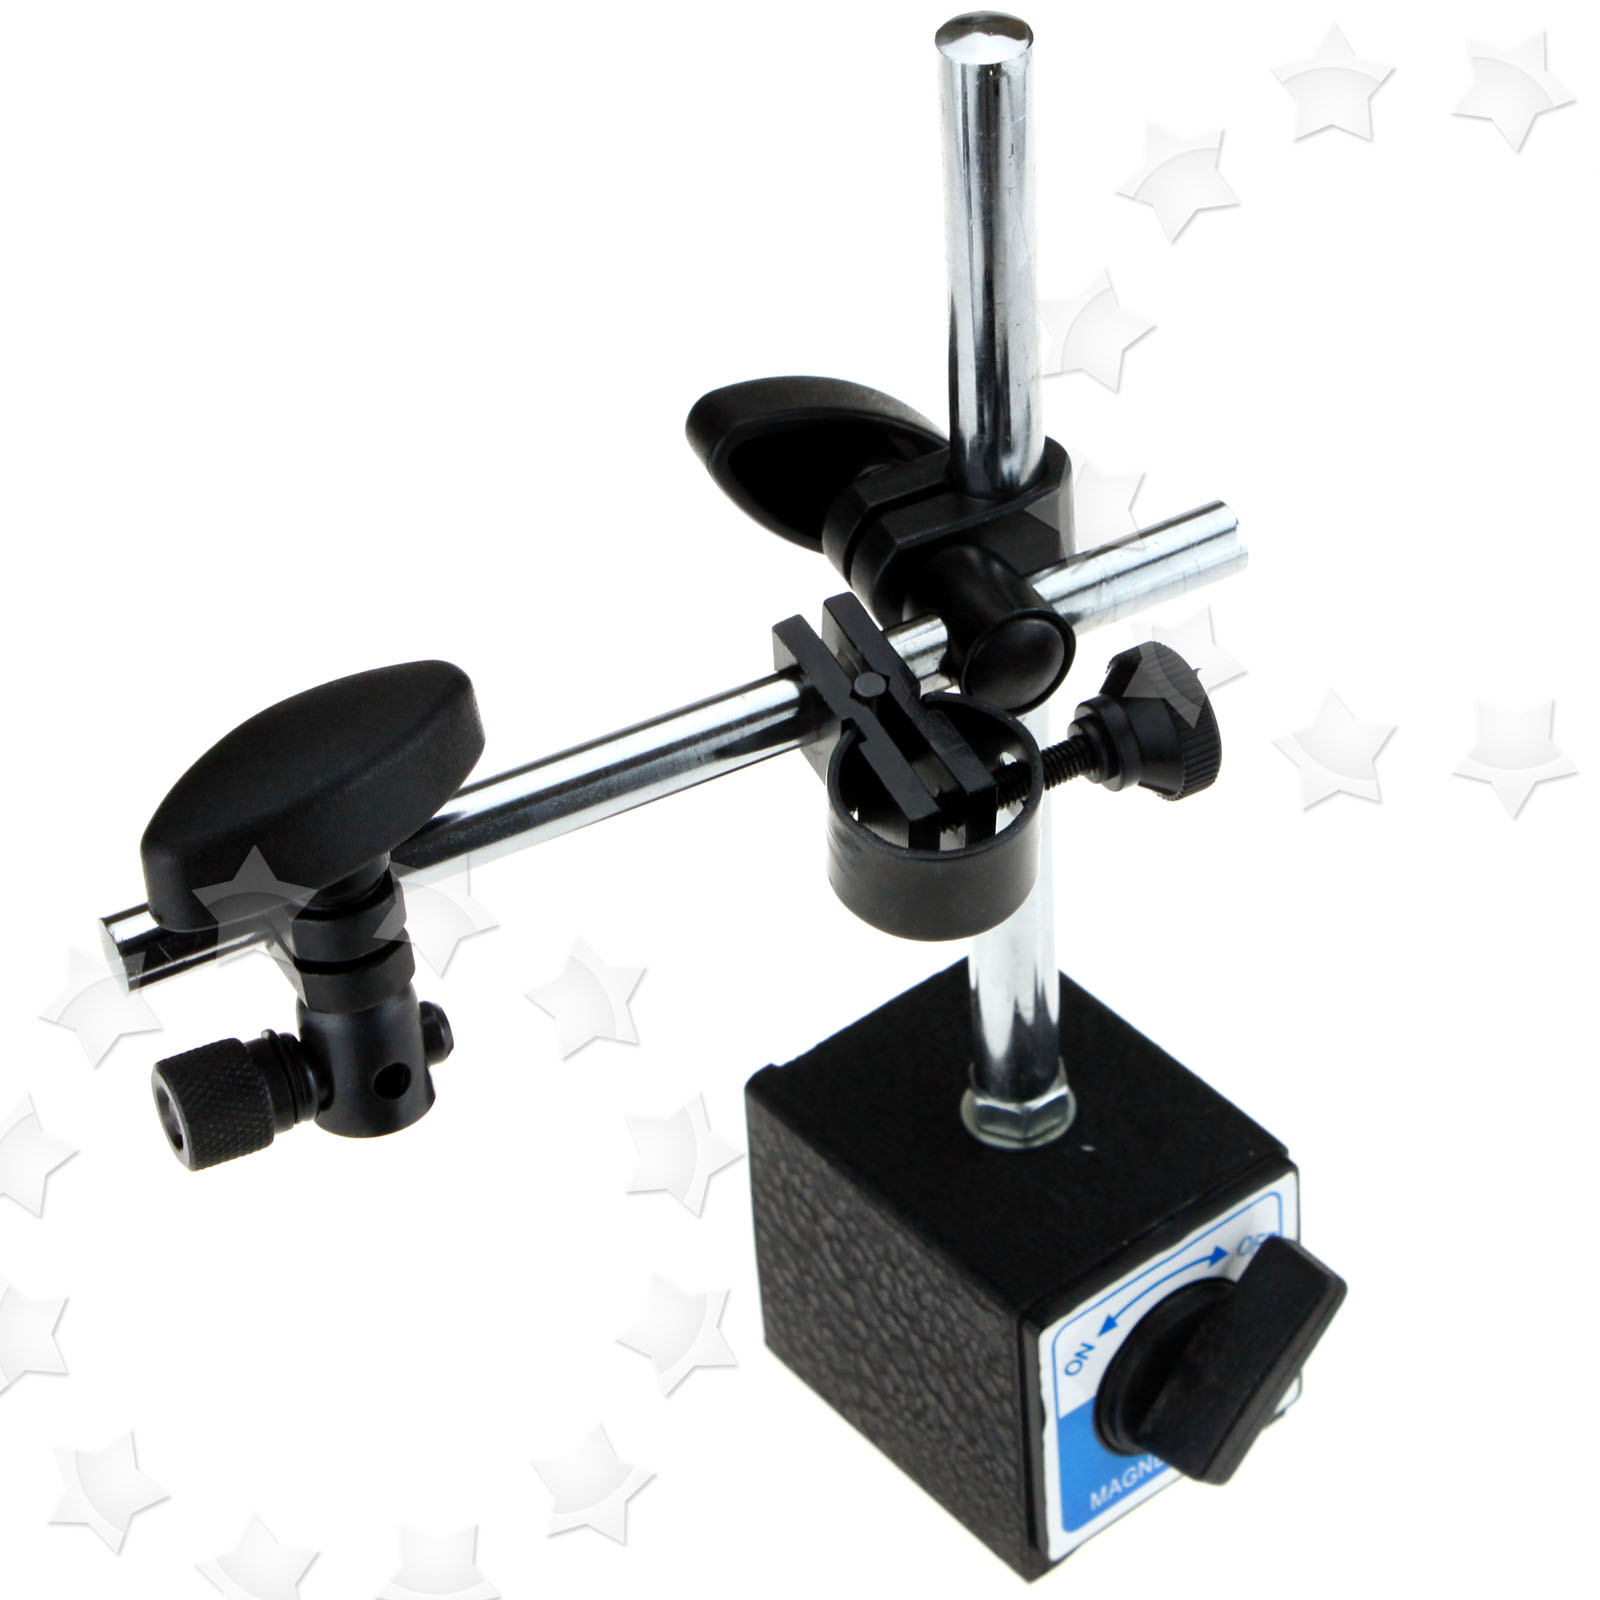 Magnetic Boom Arm : Magnetic base holder double adjustable pole for dial